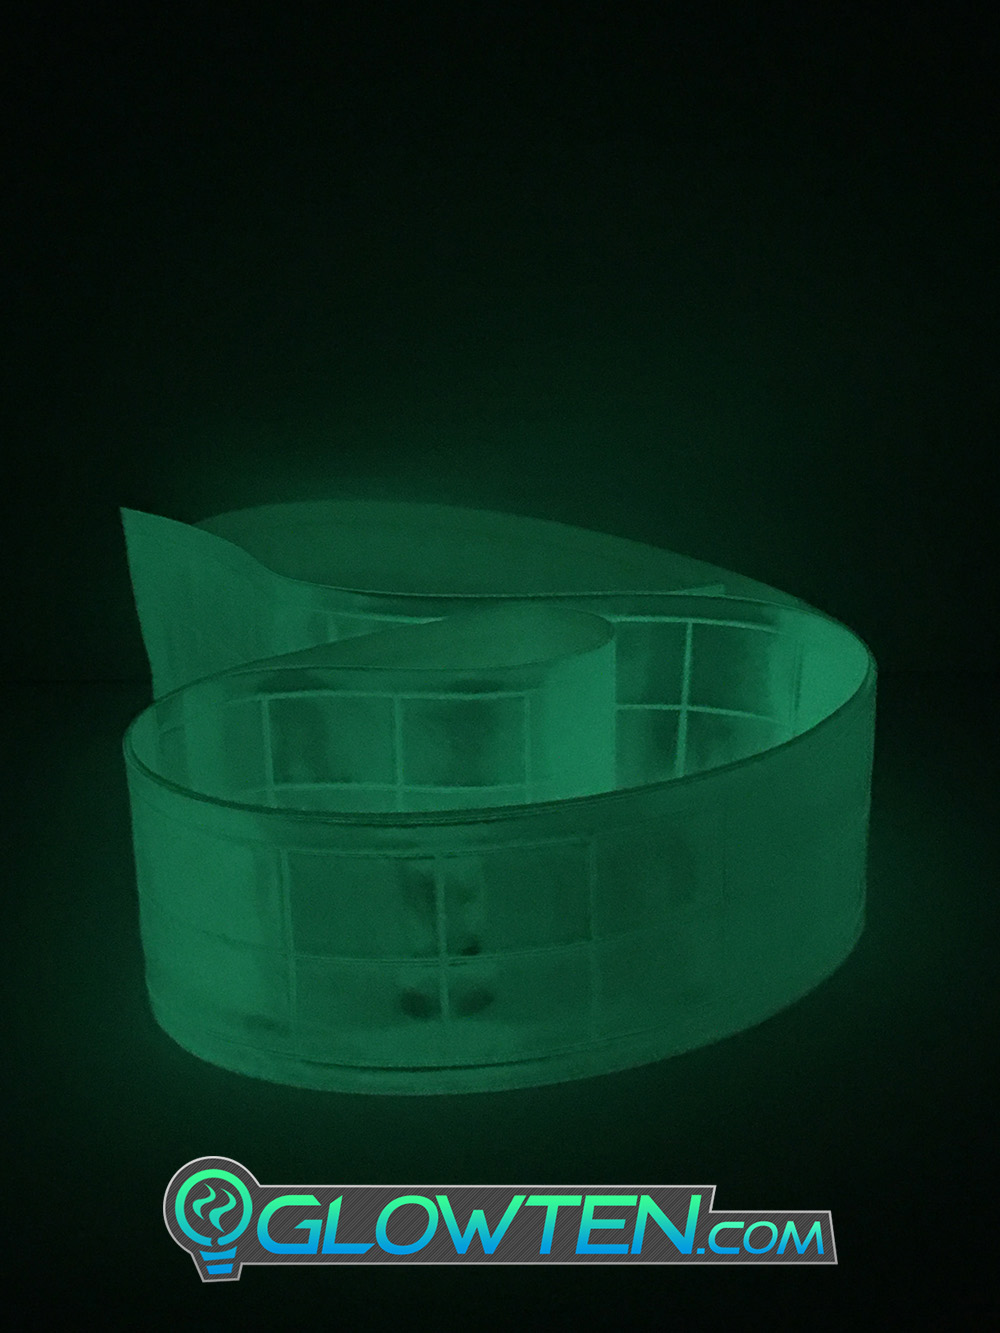 GLOWTEN.com - Shopping Buy Now Get Yours Fast Now Luminous See Better At Night Glow In The Dark Safety Reflective High-visibility Band Tape Waistband picture photo cap preview pic image search 2